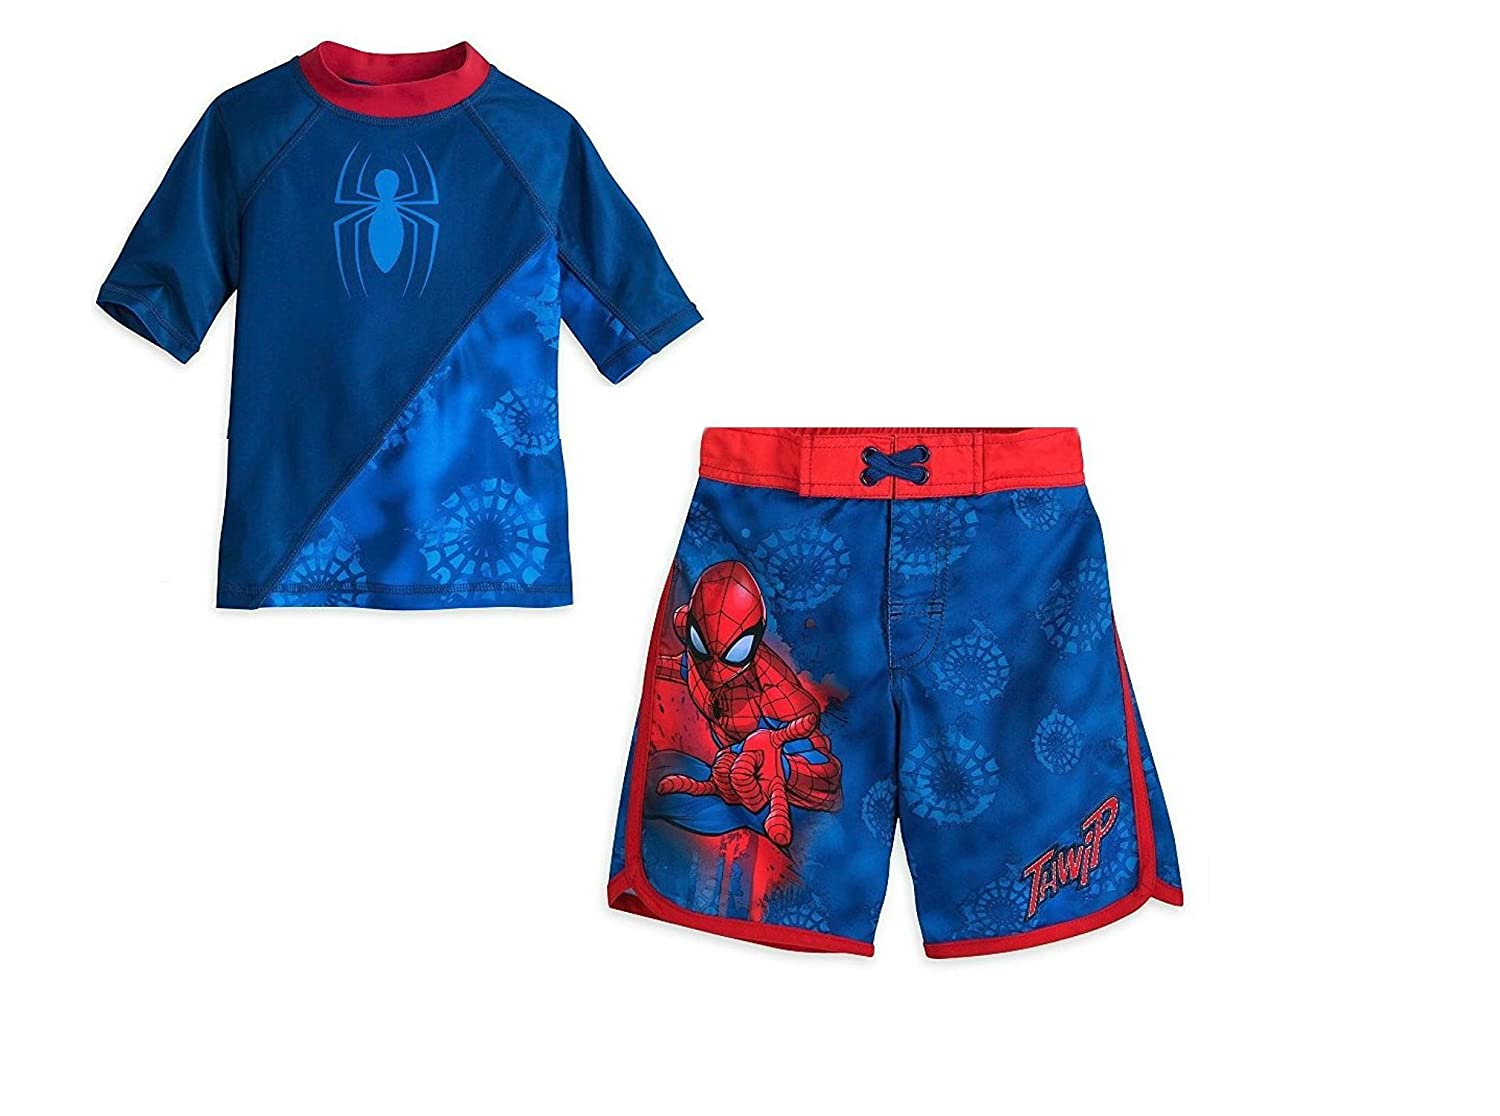 Marvel Spider-Man Boys Swim Trunks and Rash Guard Set (Toddler/Little Kid/Big Kid) UPF 50+ Sun Protection